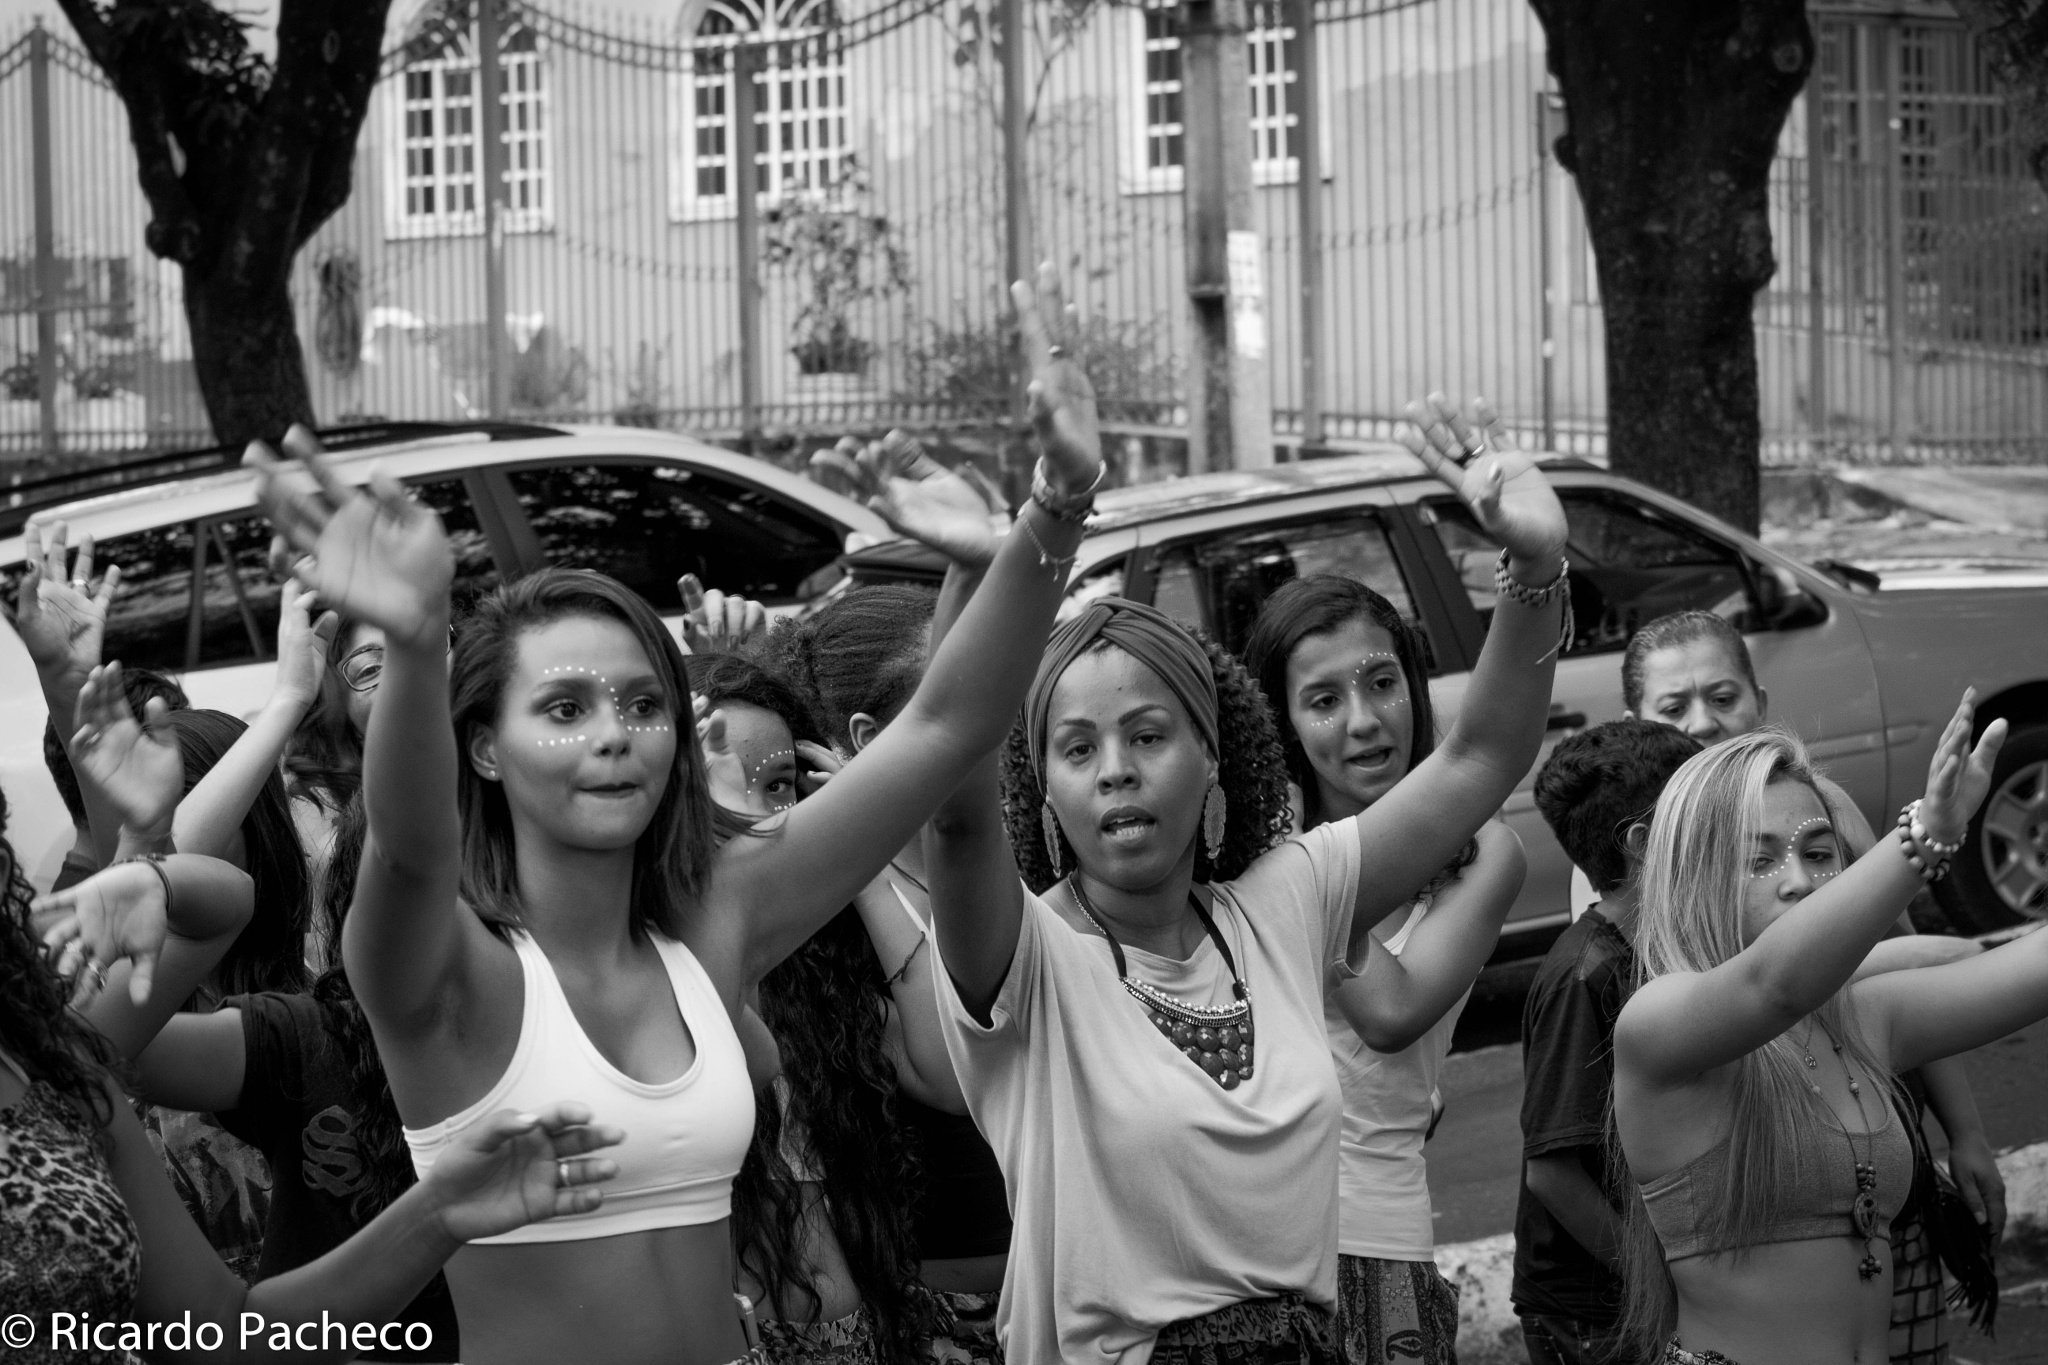 Dancing in the street by Ricardo Pacheco